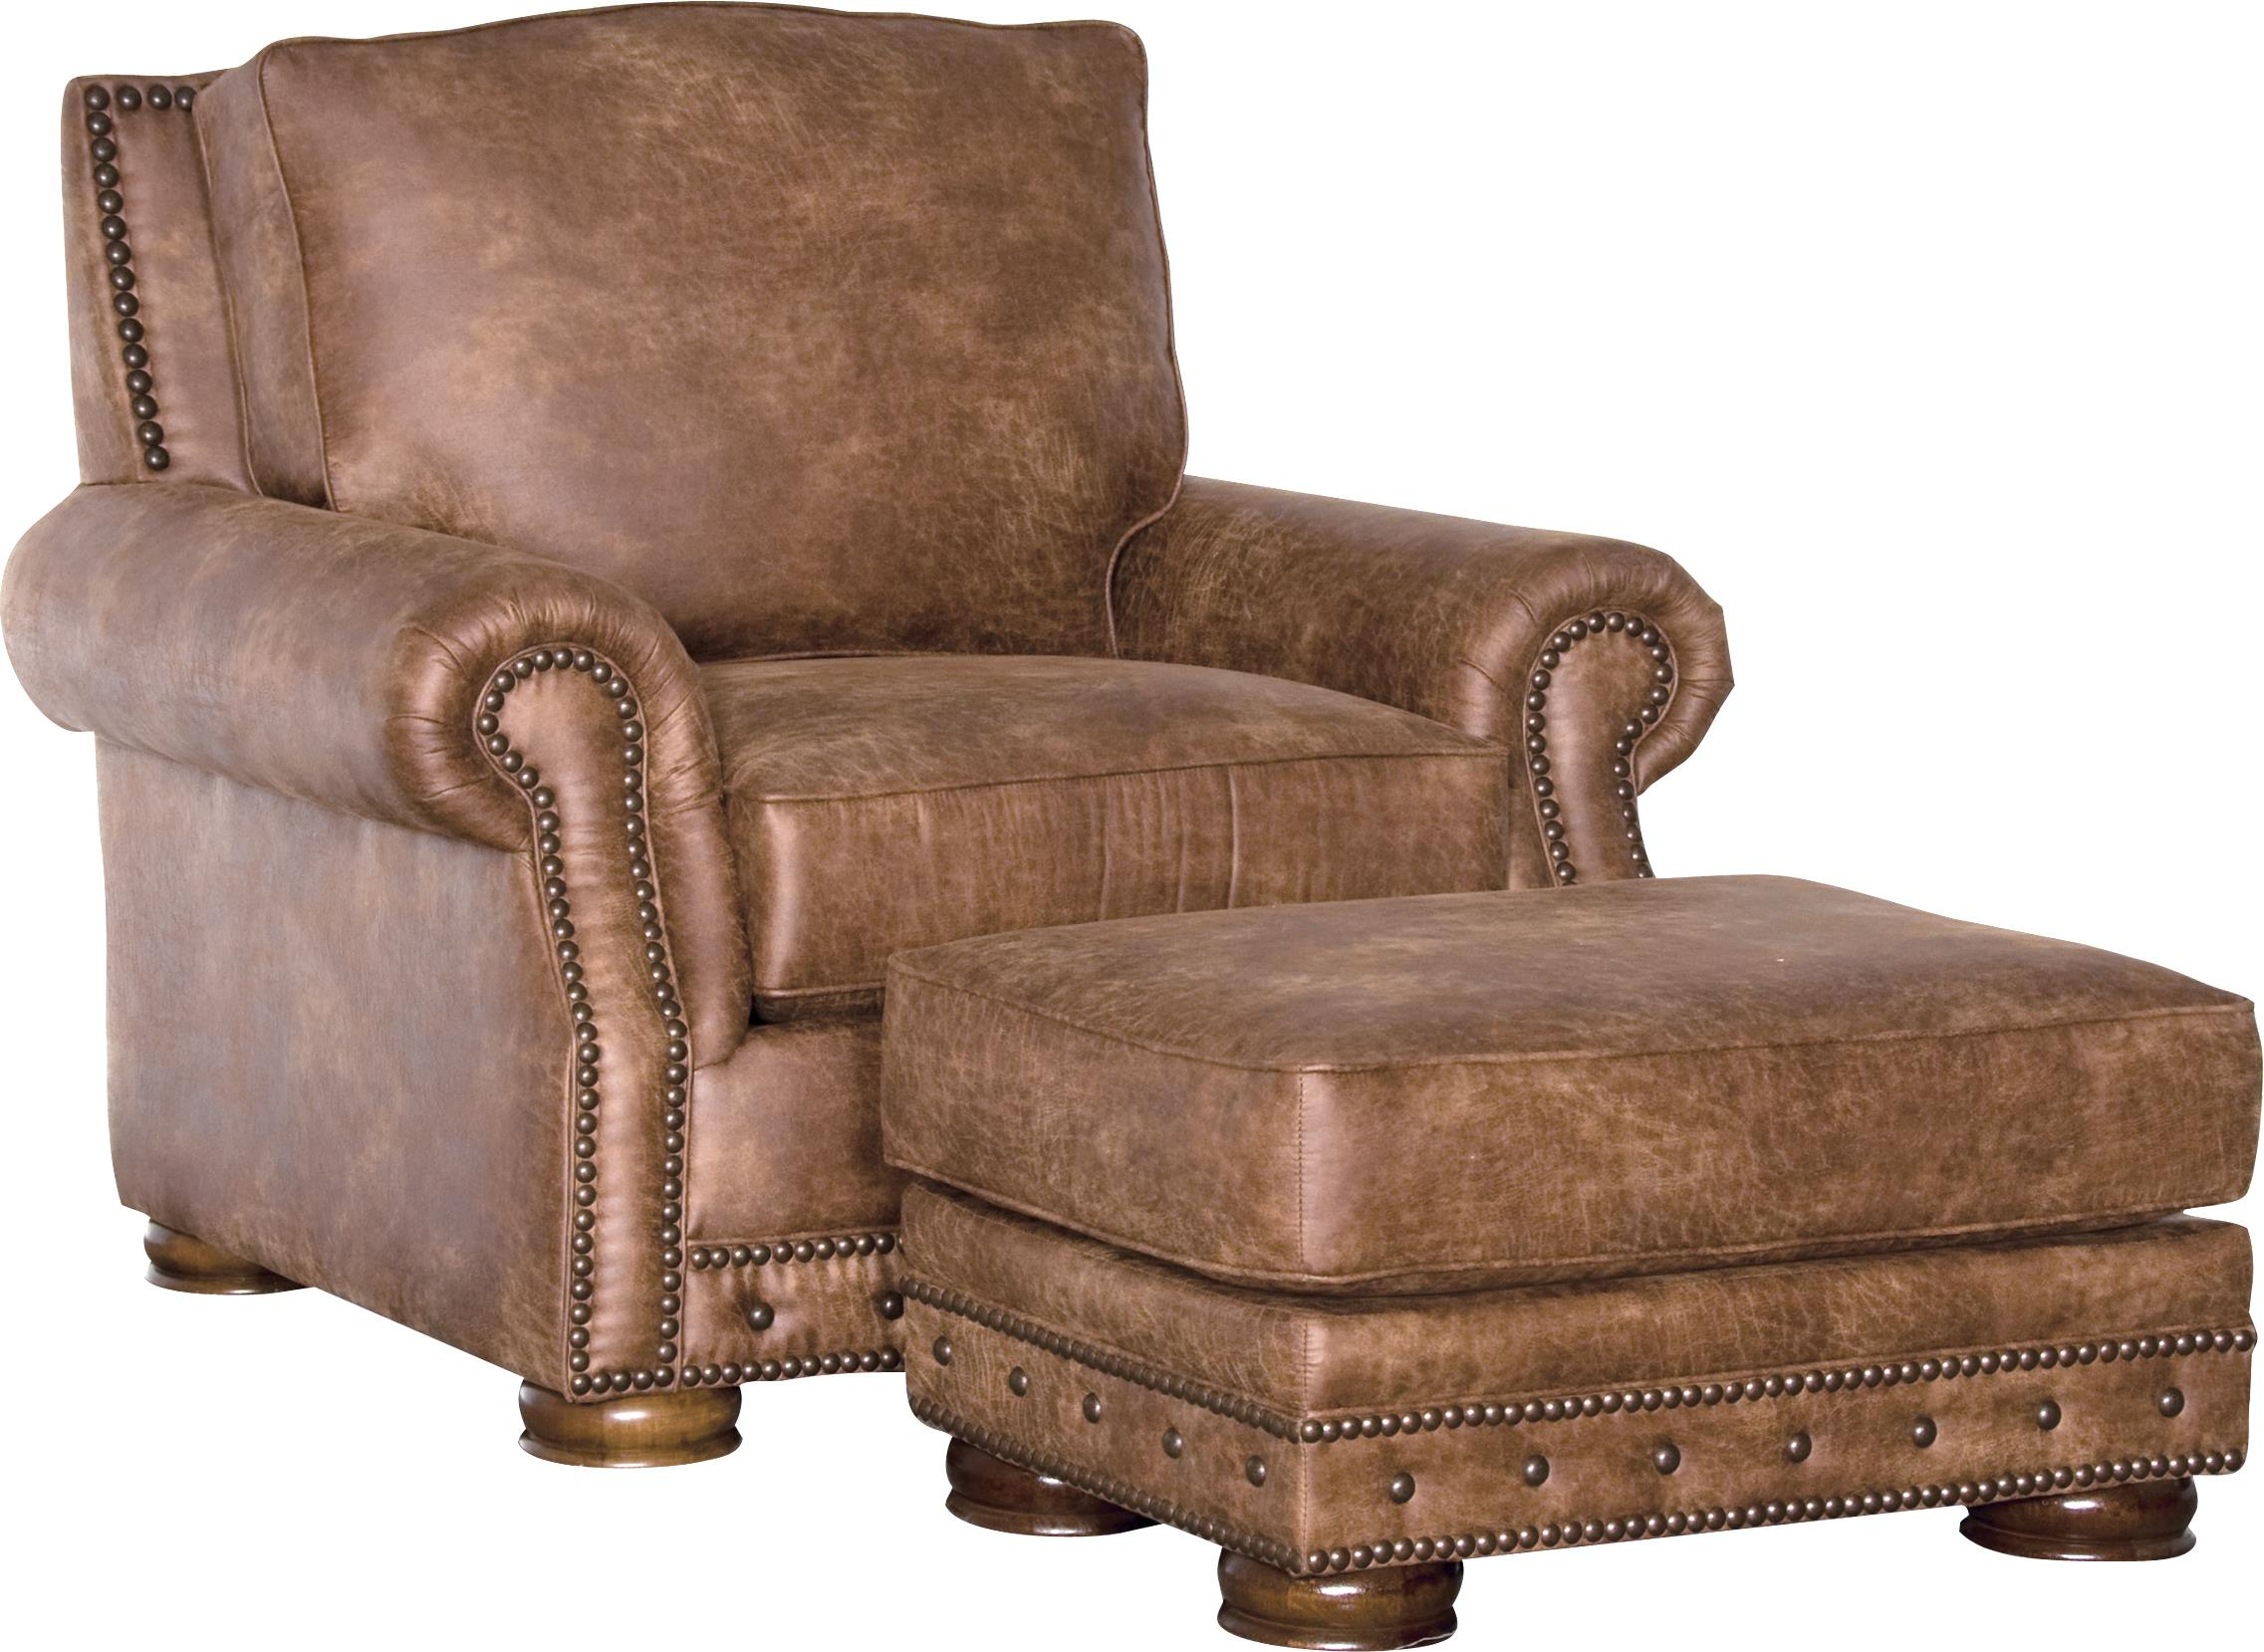 Mayo 2900 Chair & Ottoman - Item Number: 2900F40+F50-PALACH